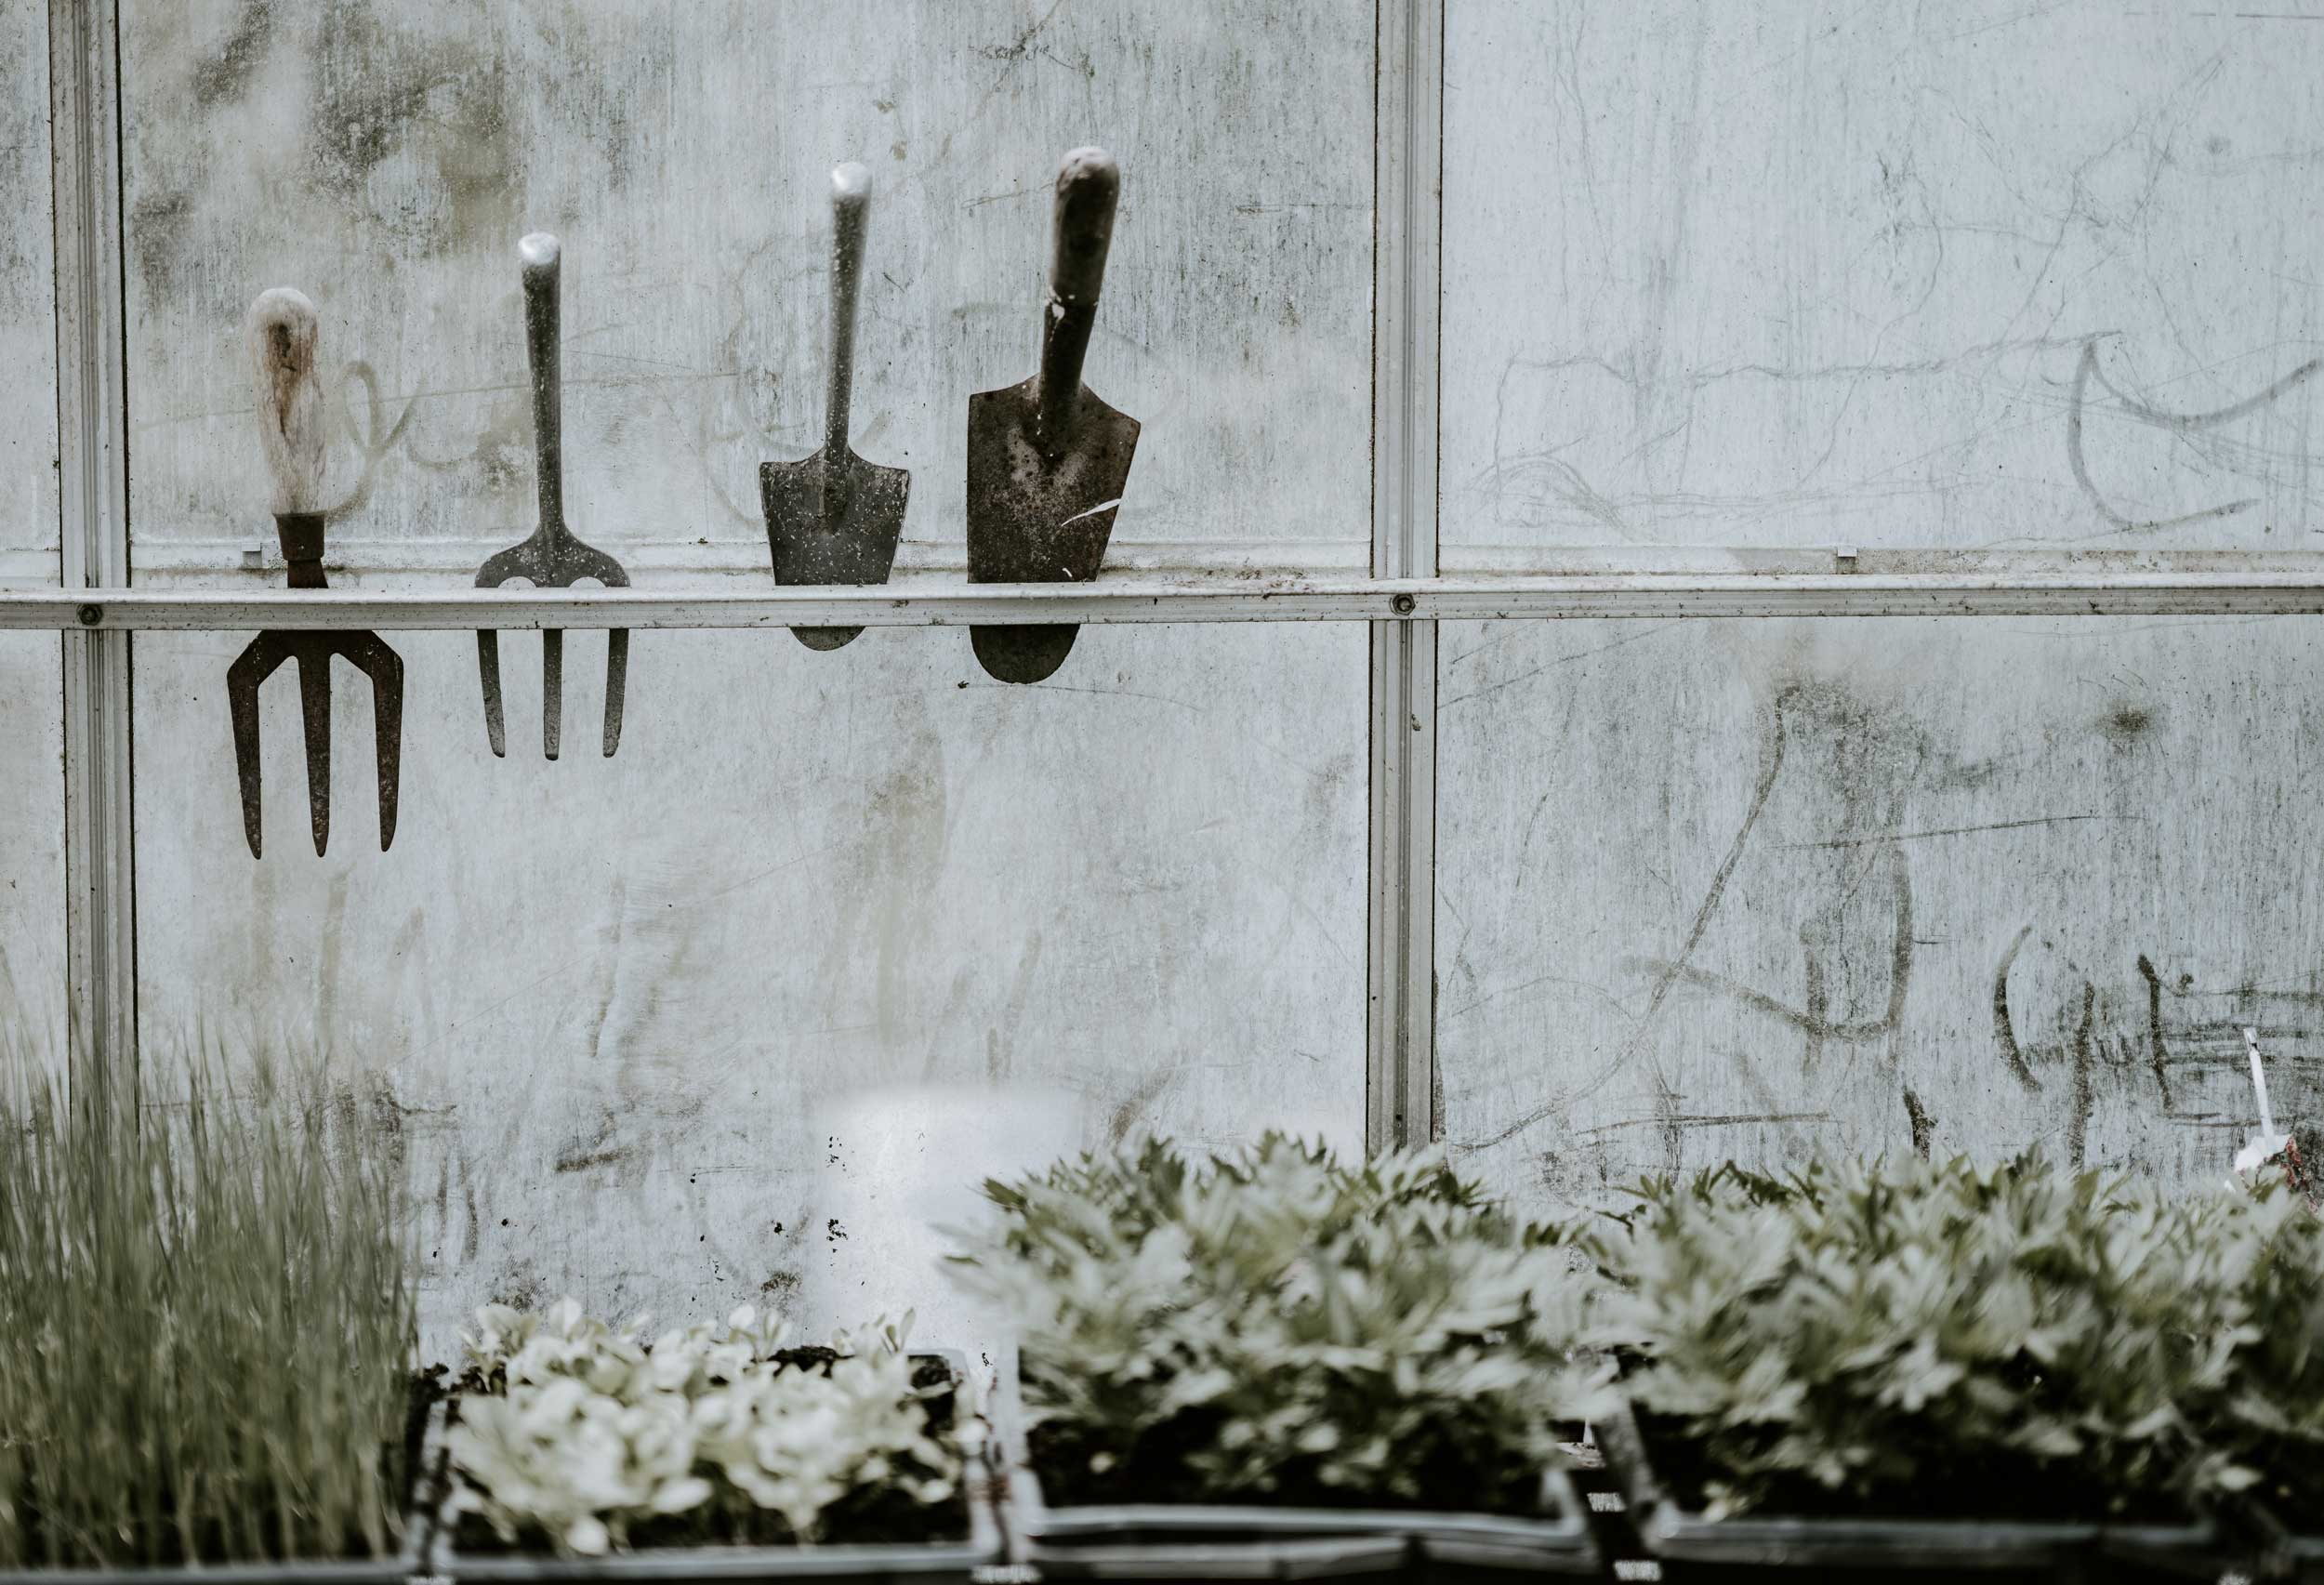 Inside a greenhouse, small spades and window